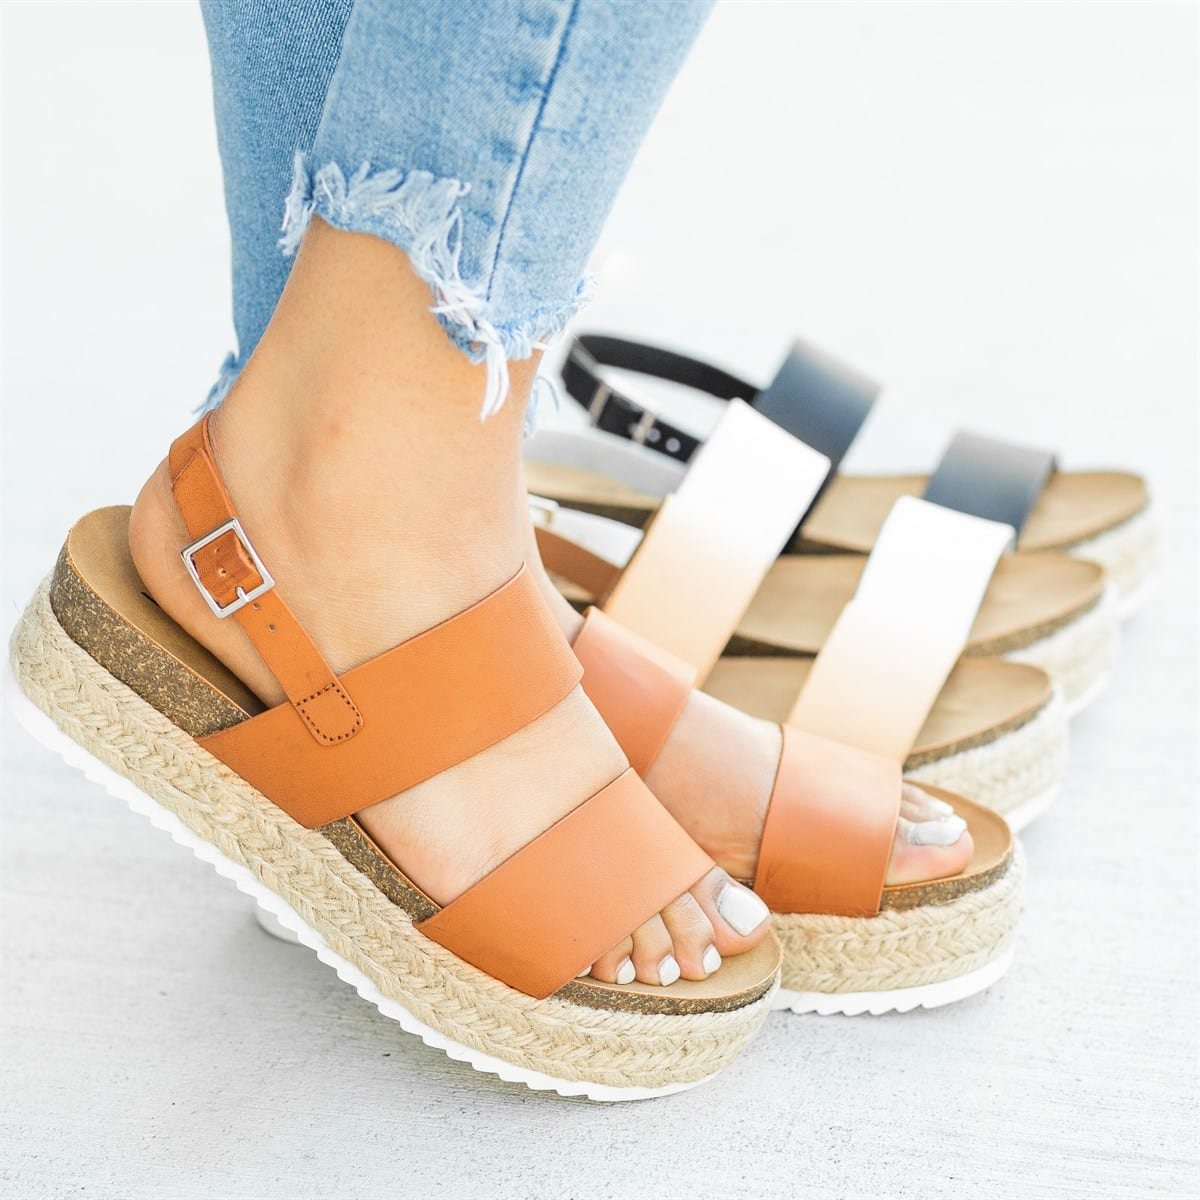 LOOZYKIT Women Sandals 2019 Platform Sandals With Wedges Shoes For Women Summer Chaussures Femme Leather Chunky Heels SandaliasLOOZYKIT Women Sandals 2019 Platform Sandals With Wedges Shoes For Women Summer Chaussures Femme Leather Chunky Heels Sandalias